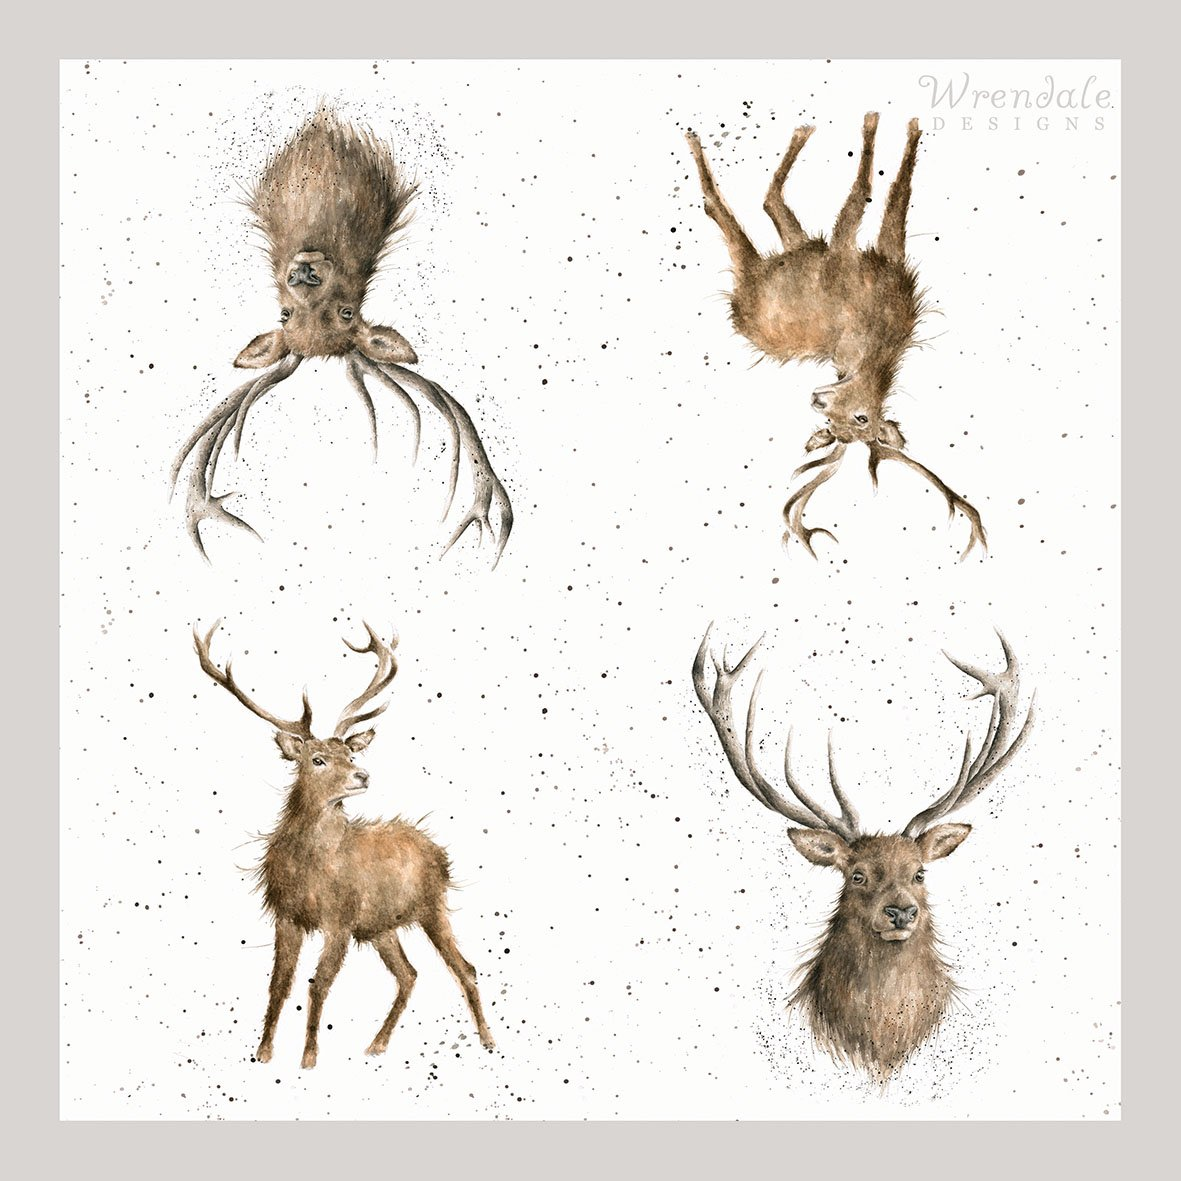 Wrendale Designs Pack Of 20 Wild At Heart Paper Lunch Napkins Boxed